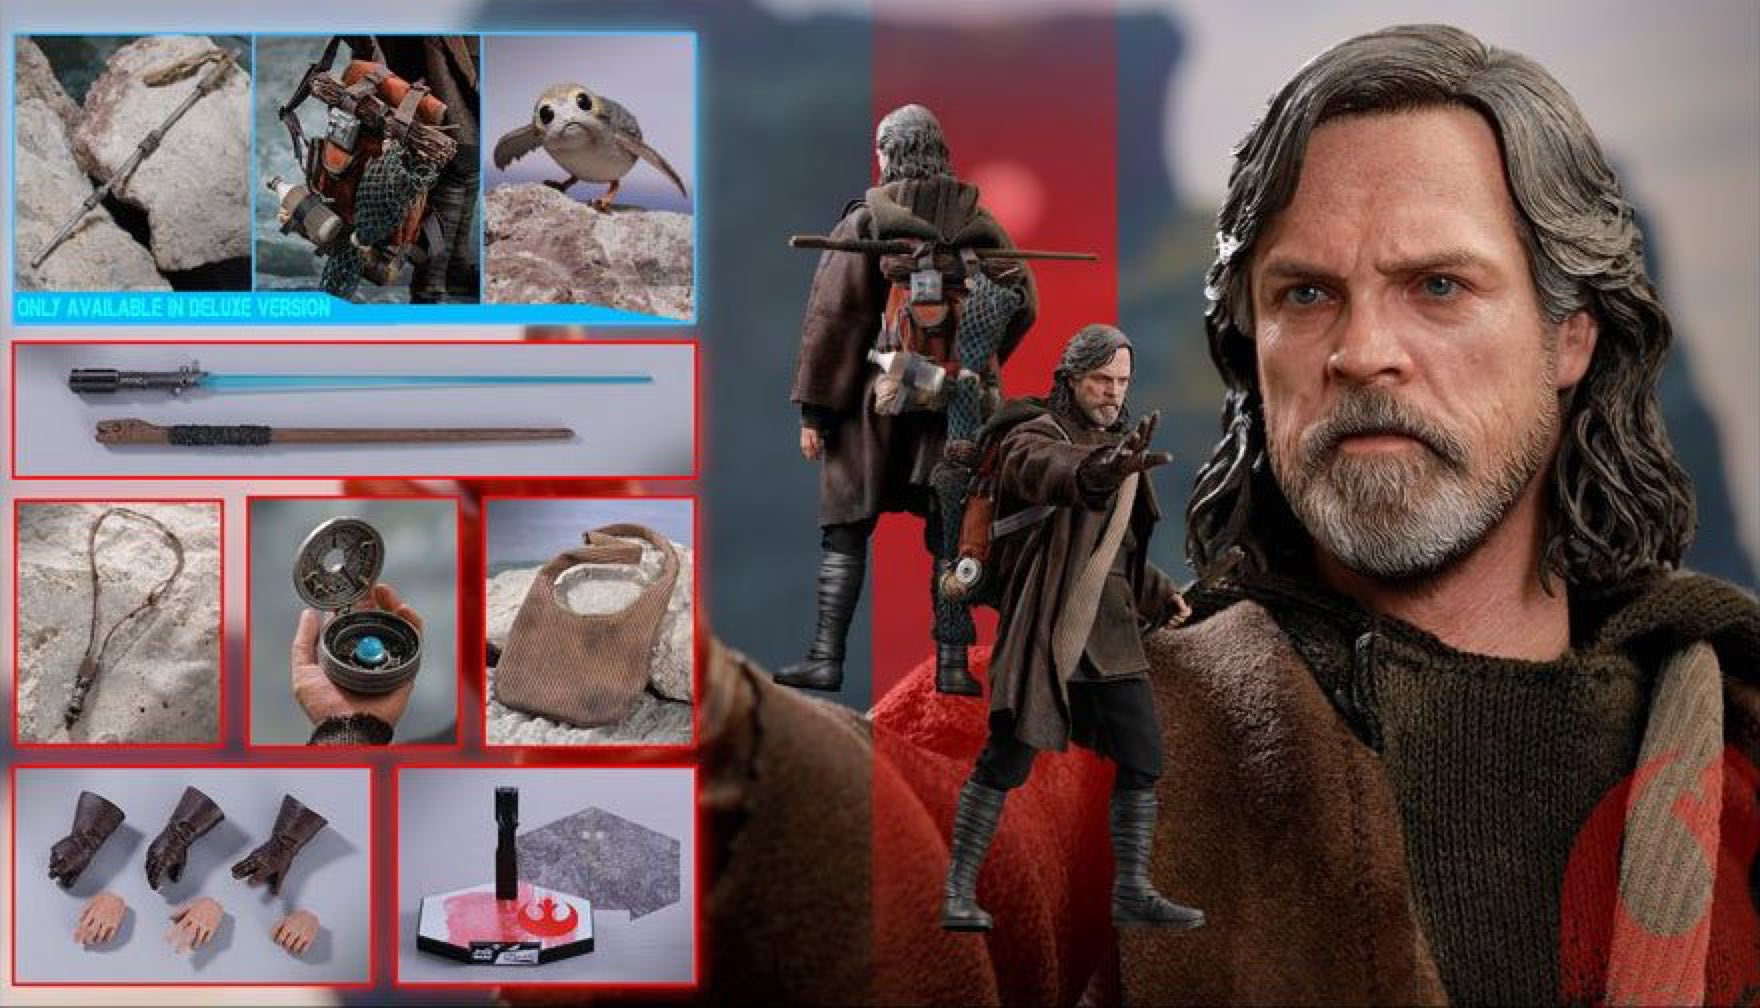 Camera Cachee Star Wars : The story behind luke skywalkers compass in star wars: the last jedi